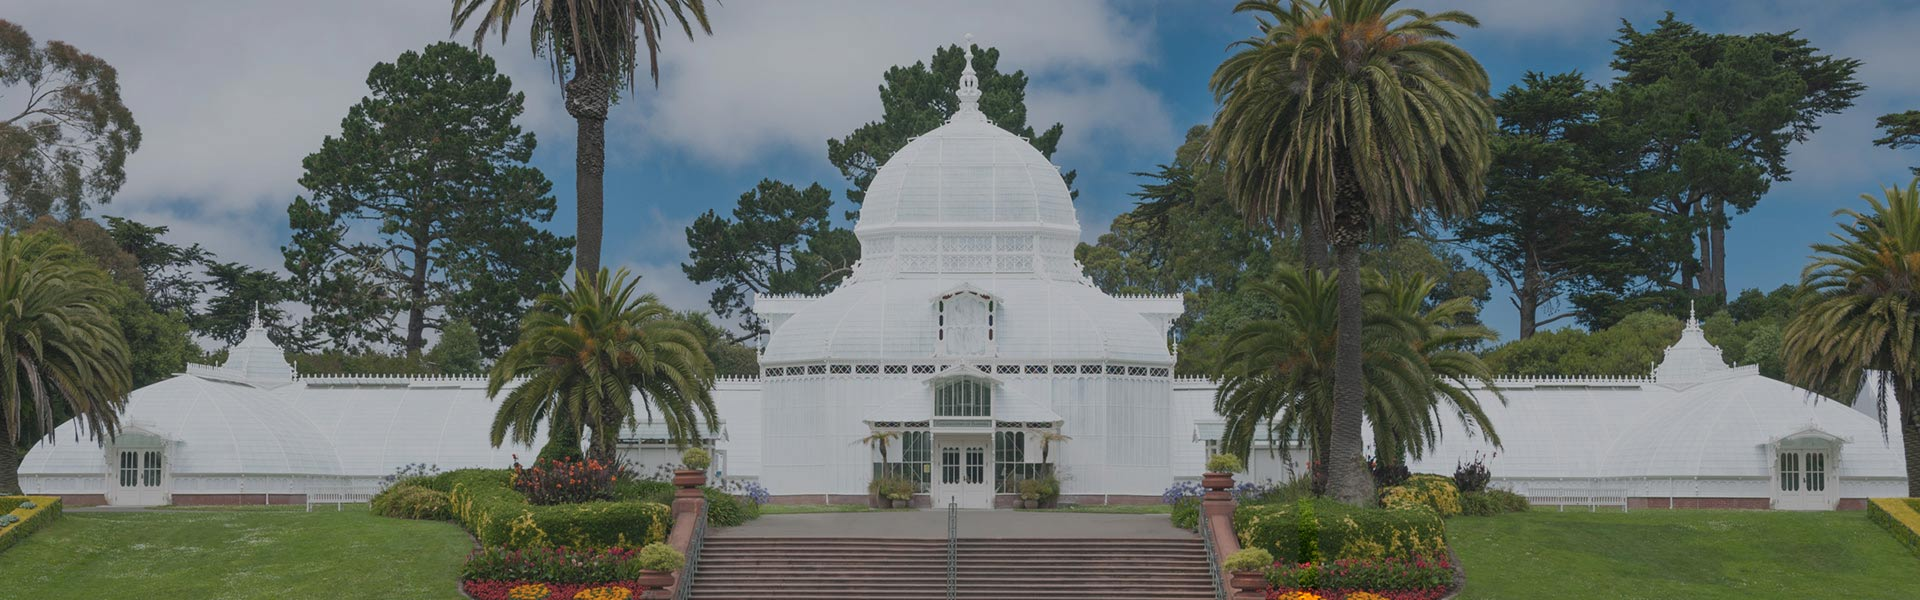 Golden Gate Park in San Francisco